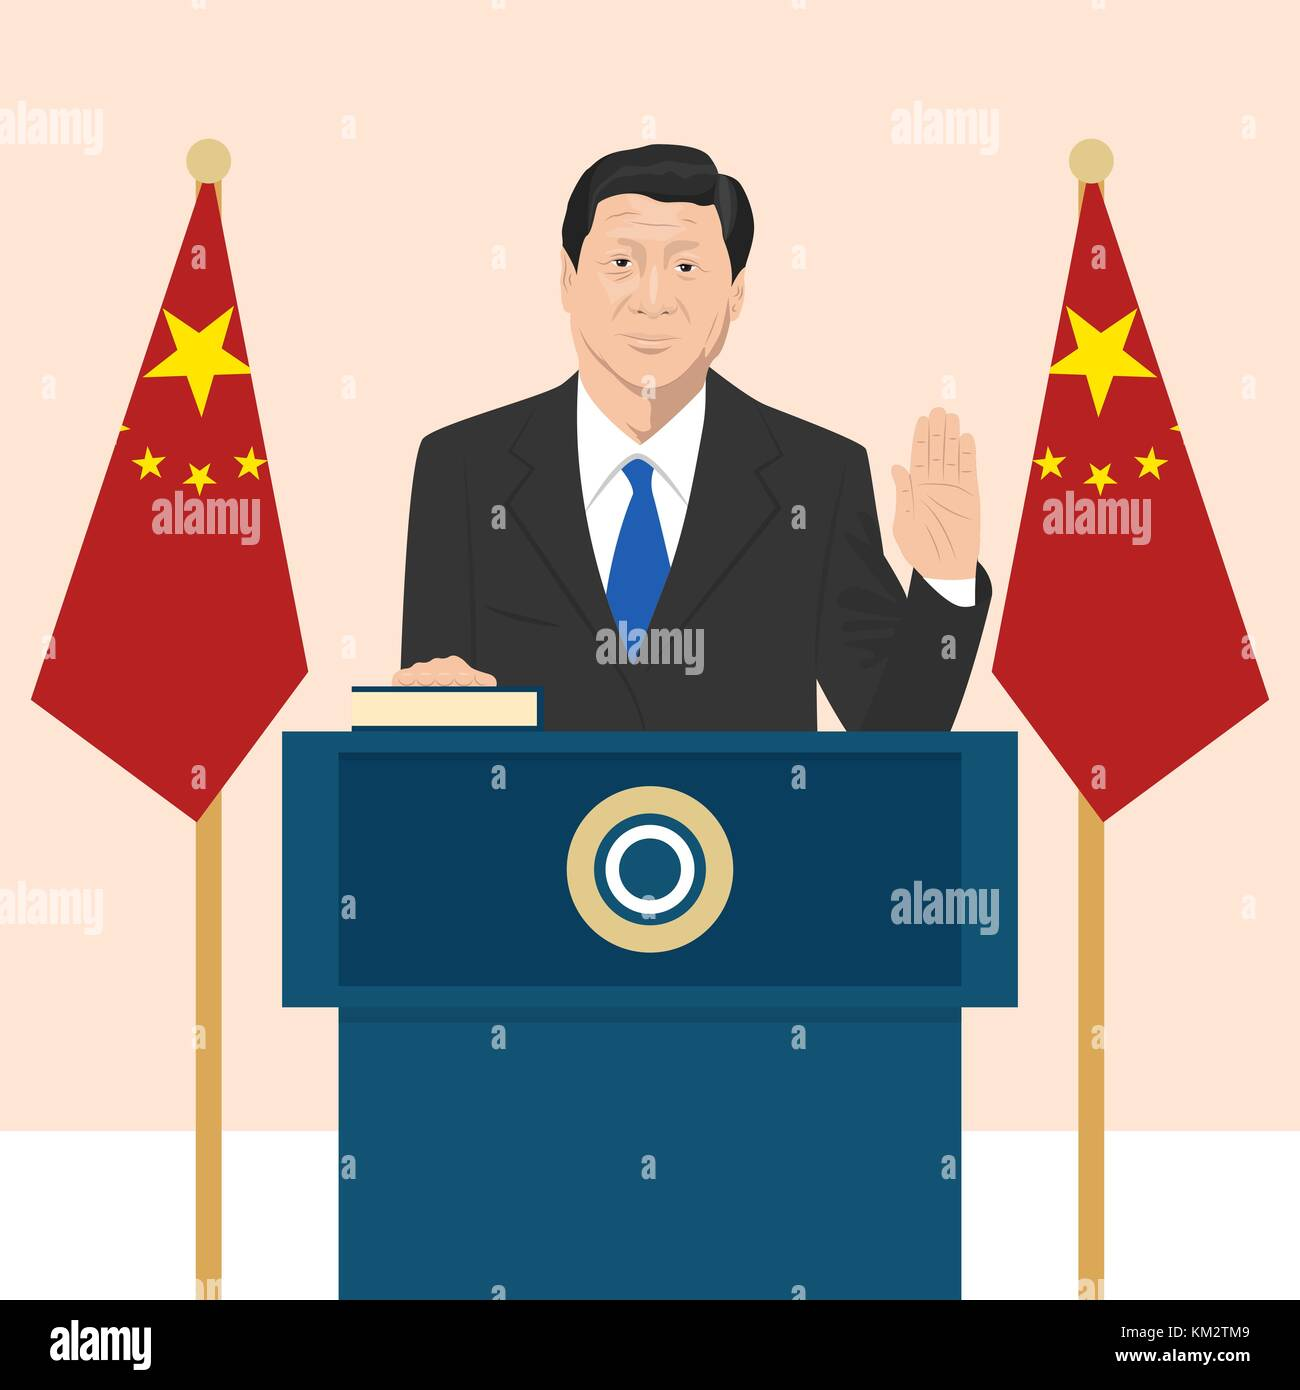 02.12.2017 Editorial illustration of the President of People s Republic of China Xi Jinping that is taking an oath - Stock Vector